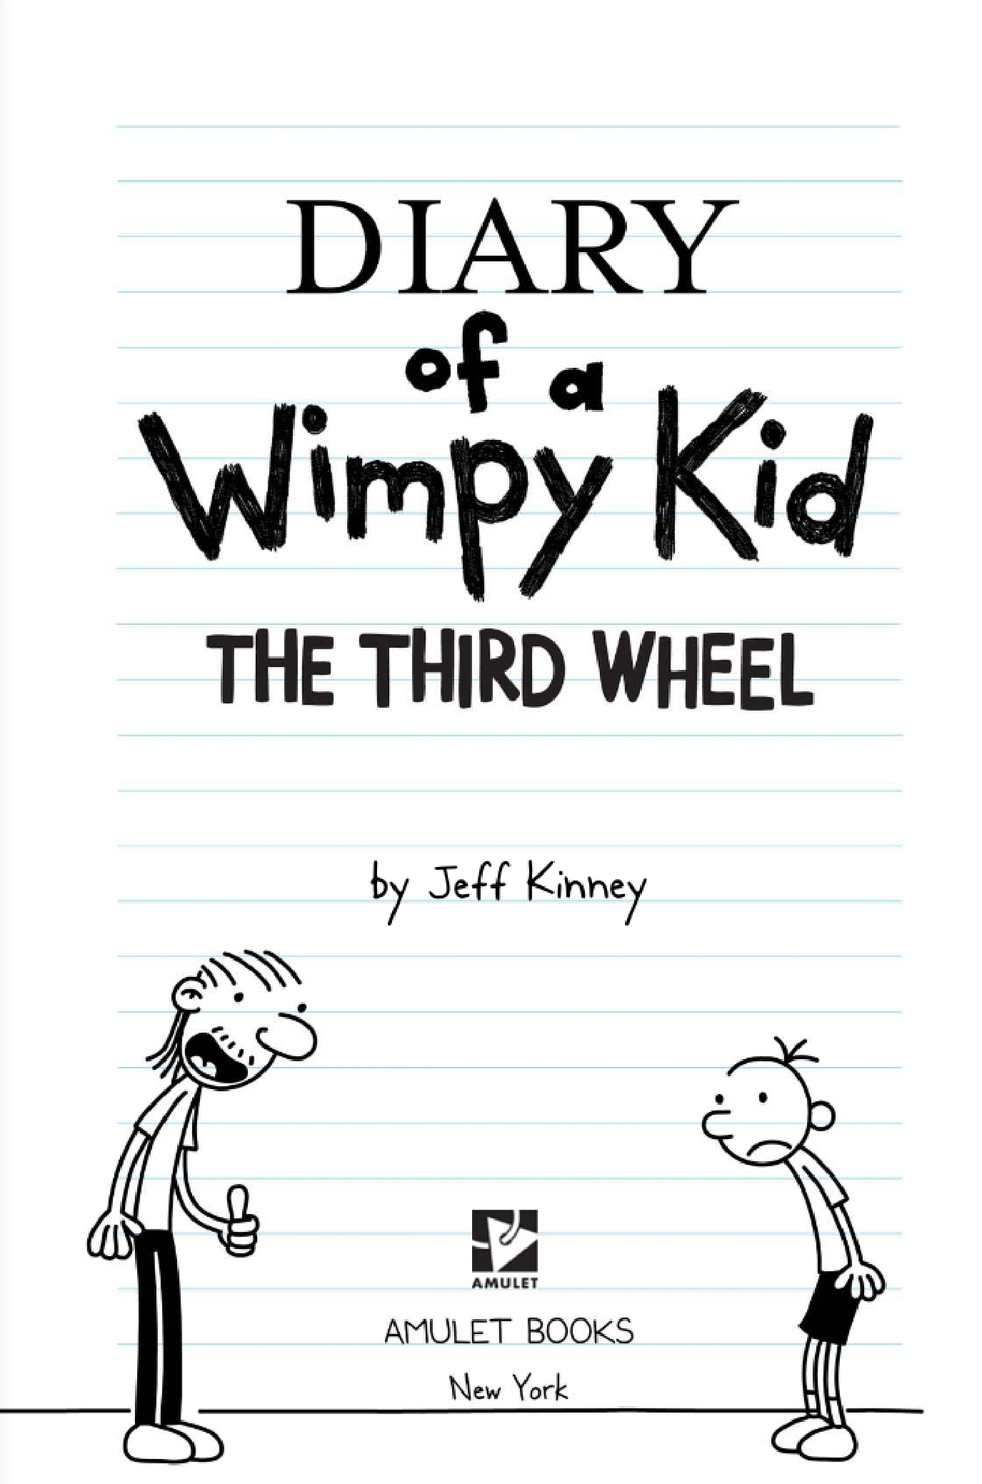 "diary of a wimpy kid the third wheel essay ""diary of a wimpy kid: the third wheel"" is a young adult novel by jeff kinney which follows the misadventures of middle-schooler greg heffley as he attempts to adjust to his uncle gary moving in, and finding a date for the valentine's day dance it is the seventh installment in the ""wimpy kid"" series by kinney."